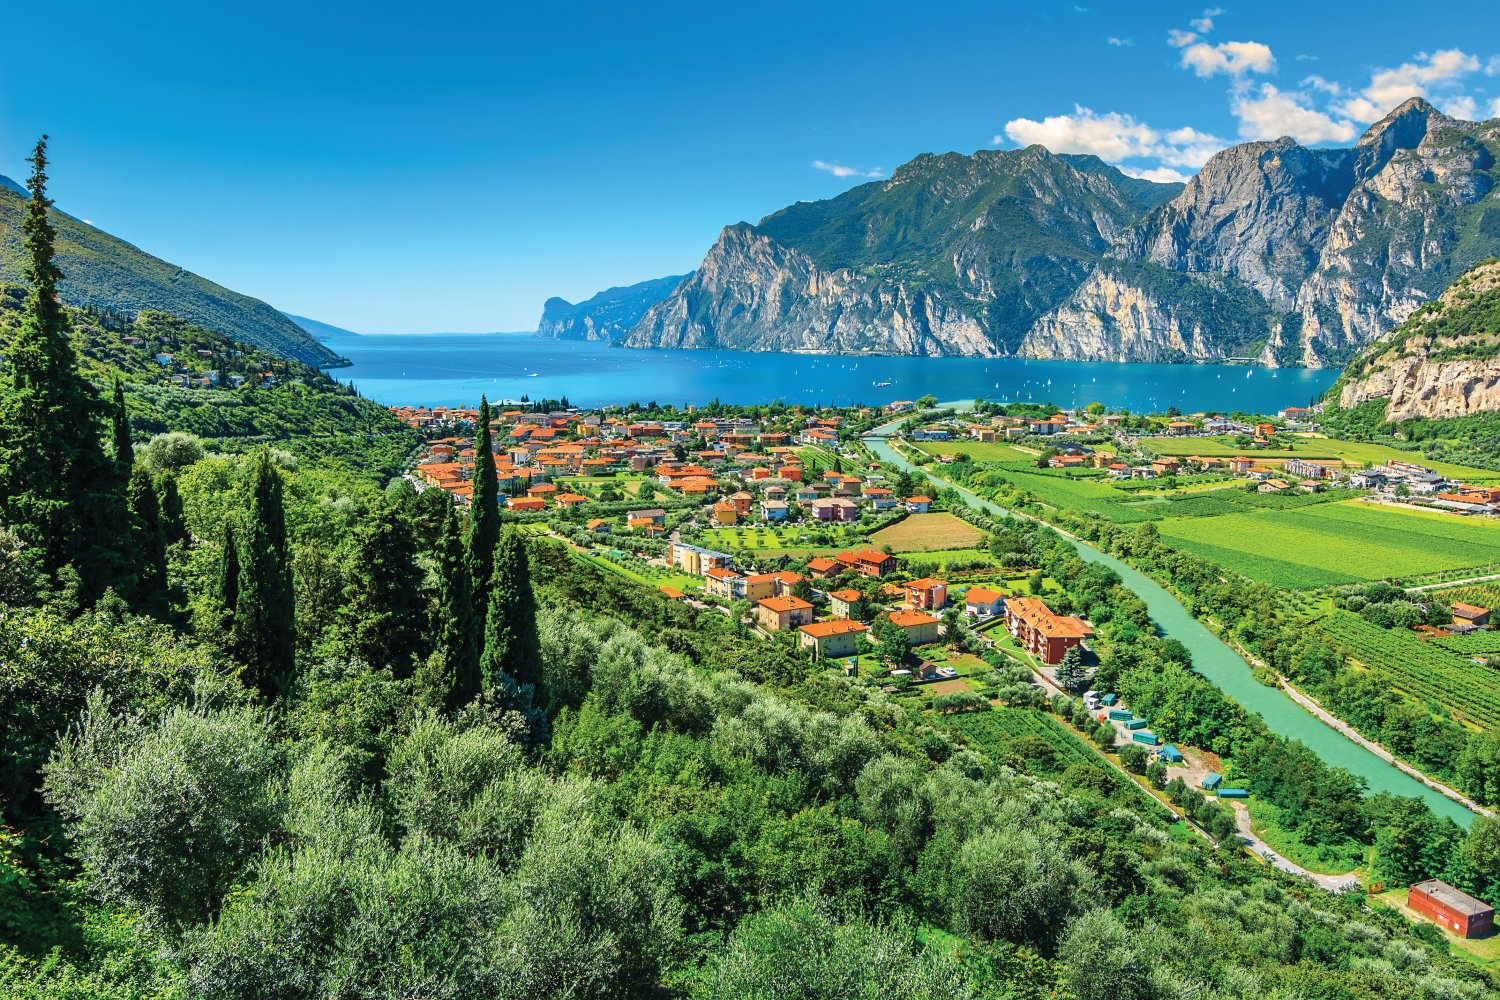 Summer holiday in Lake Garda